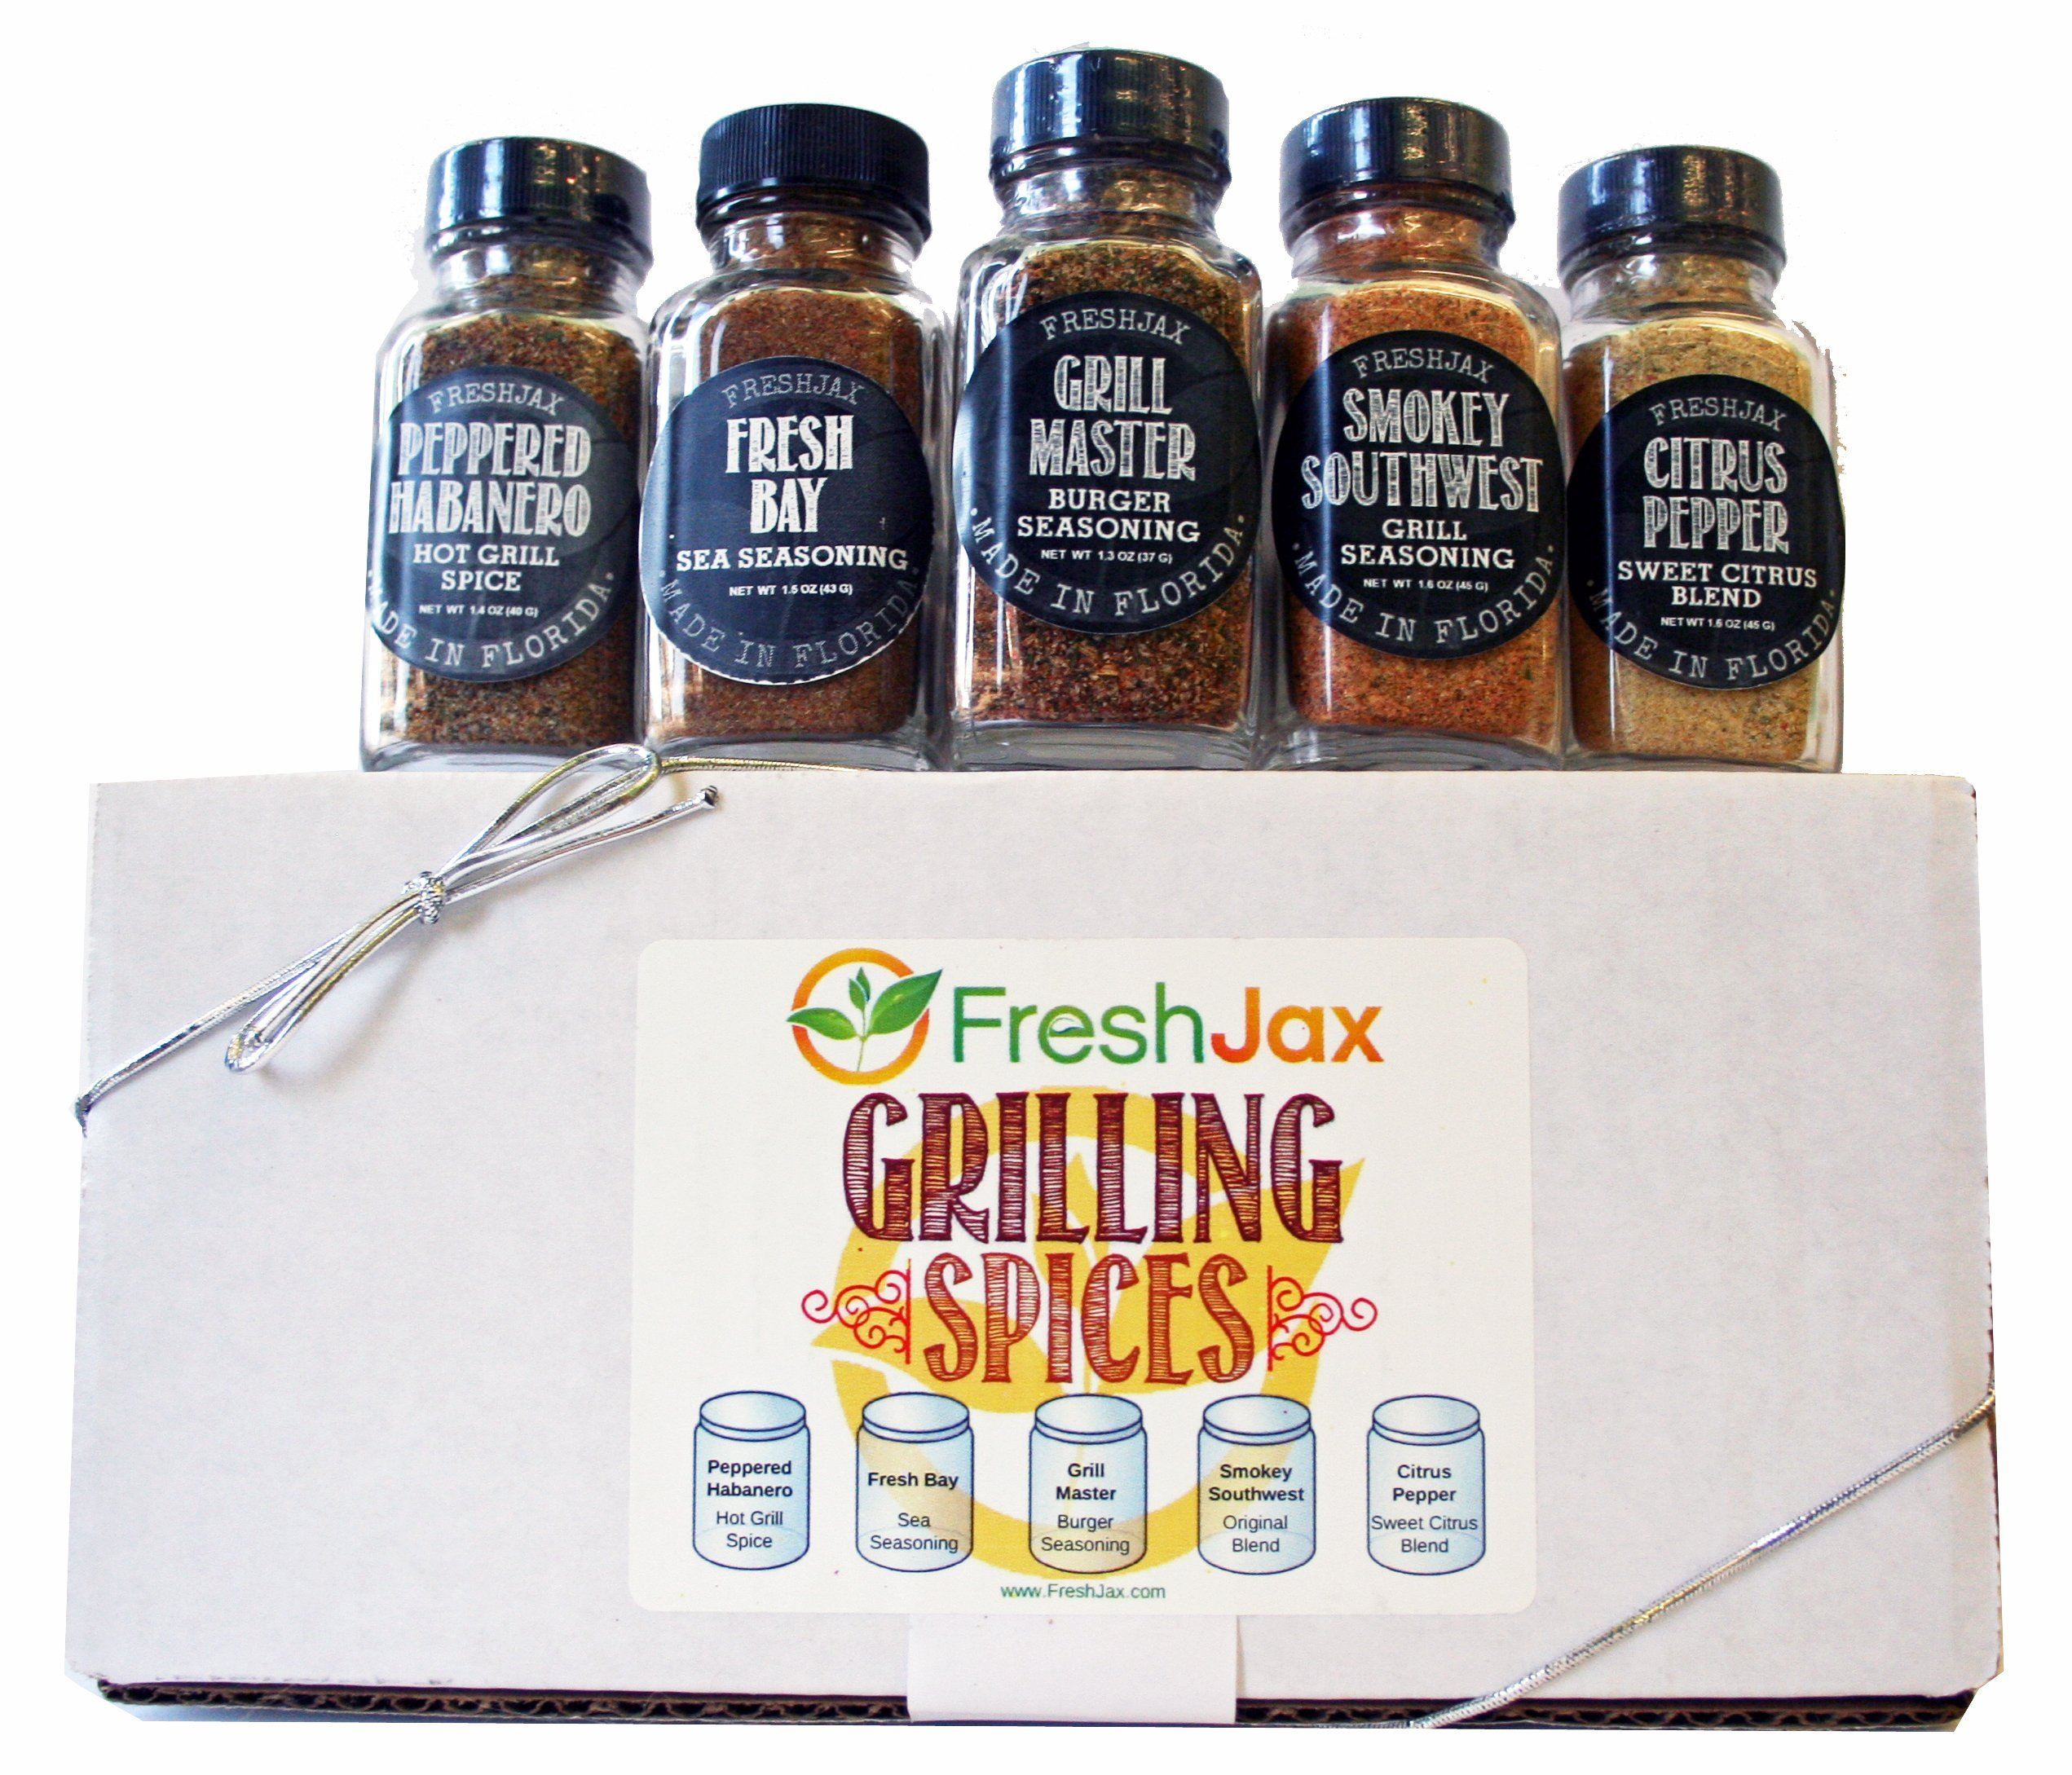 FreshJax Gourmet Spices and Seasonings, Gift Box (Set of 5) 91Qhtq3pXUL